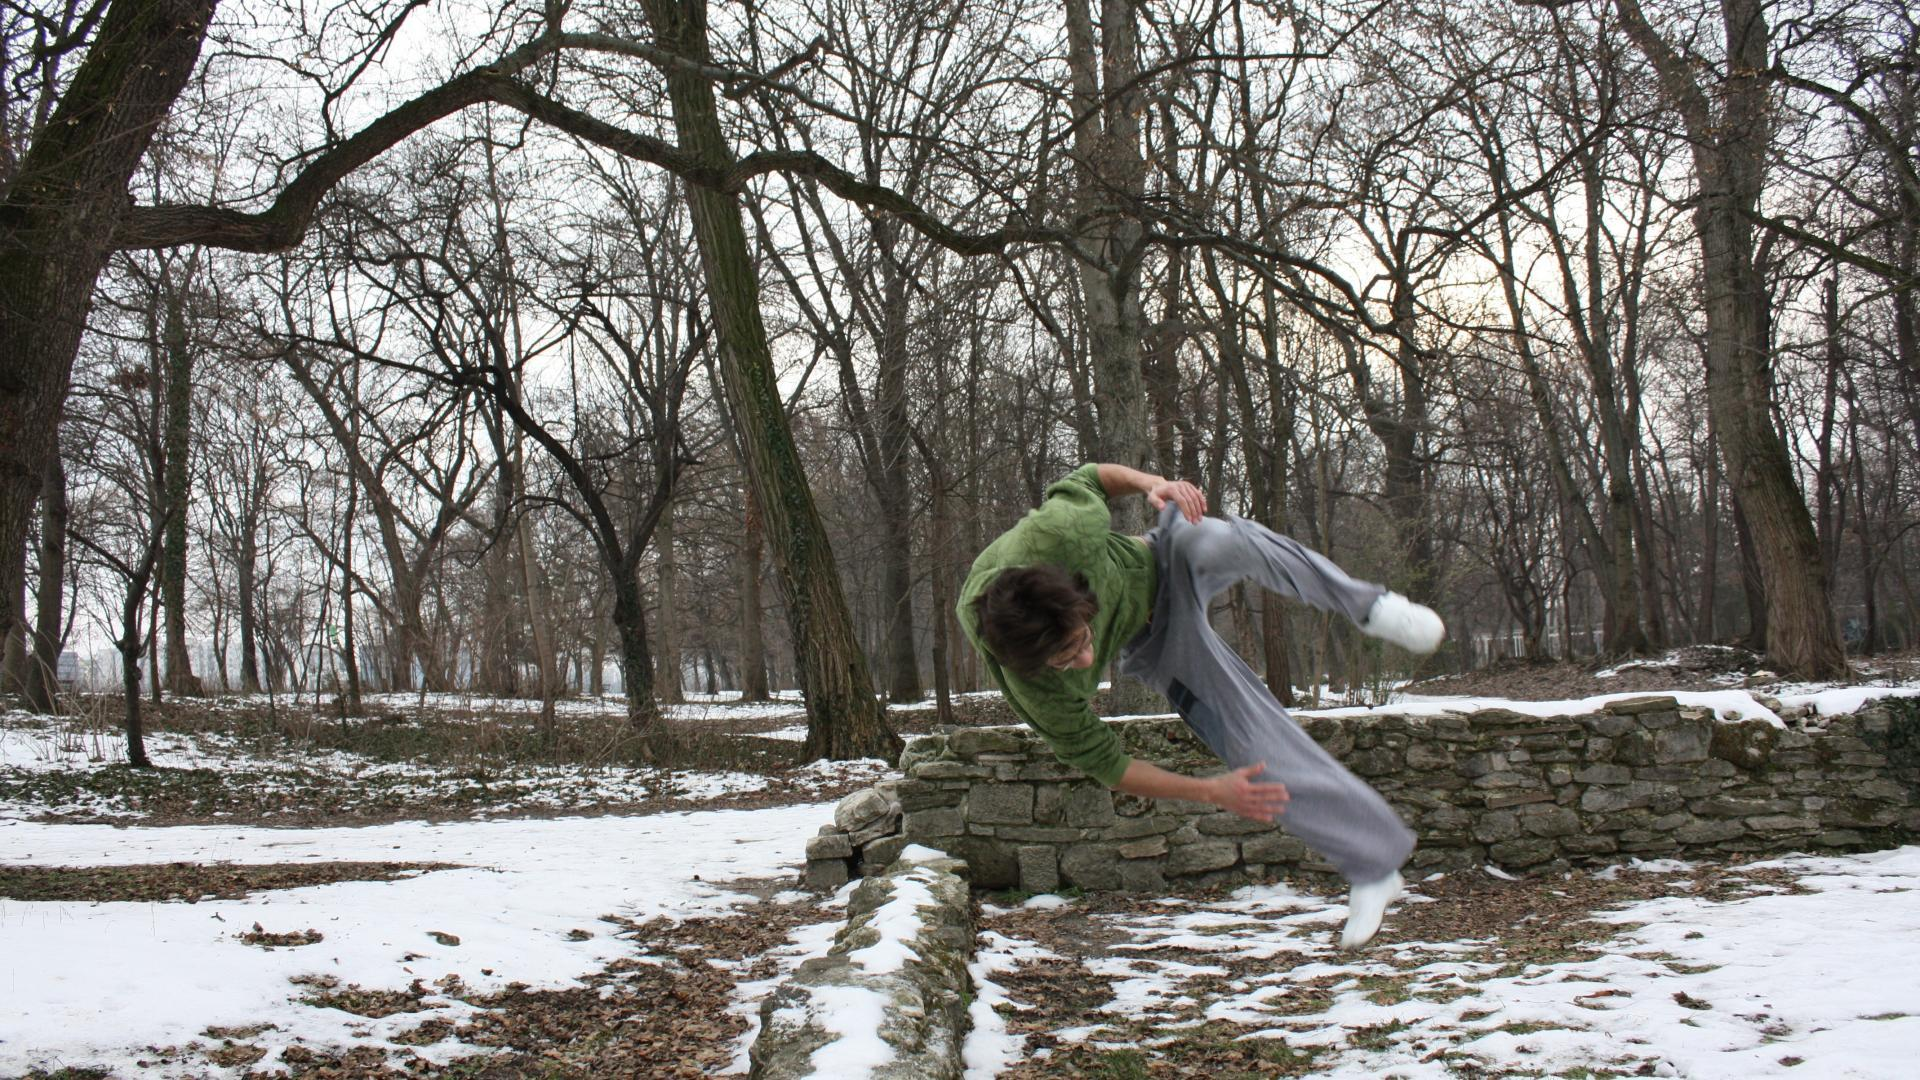 Snow parkour freerunning flip wallpaper | (30877)